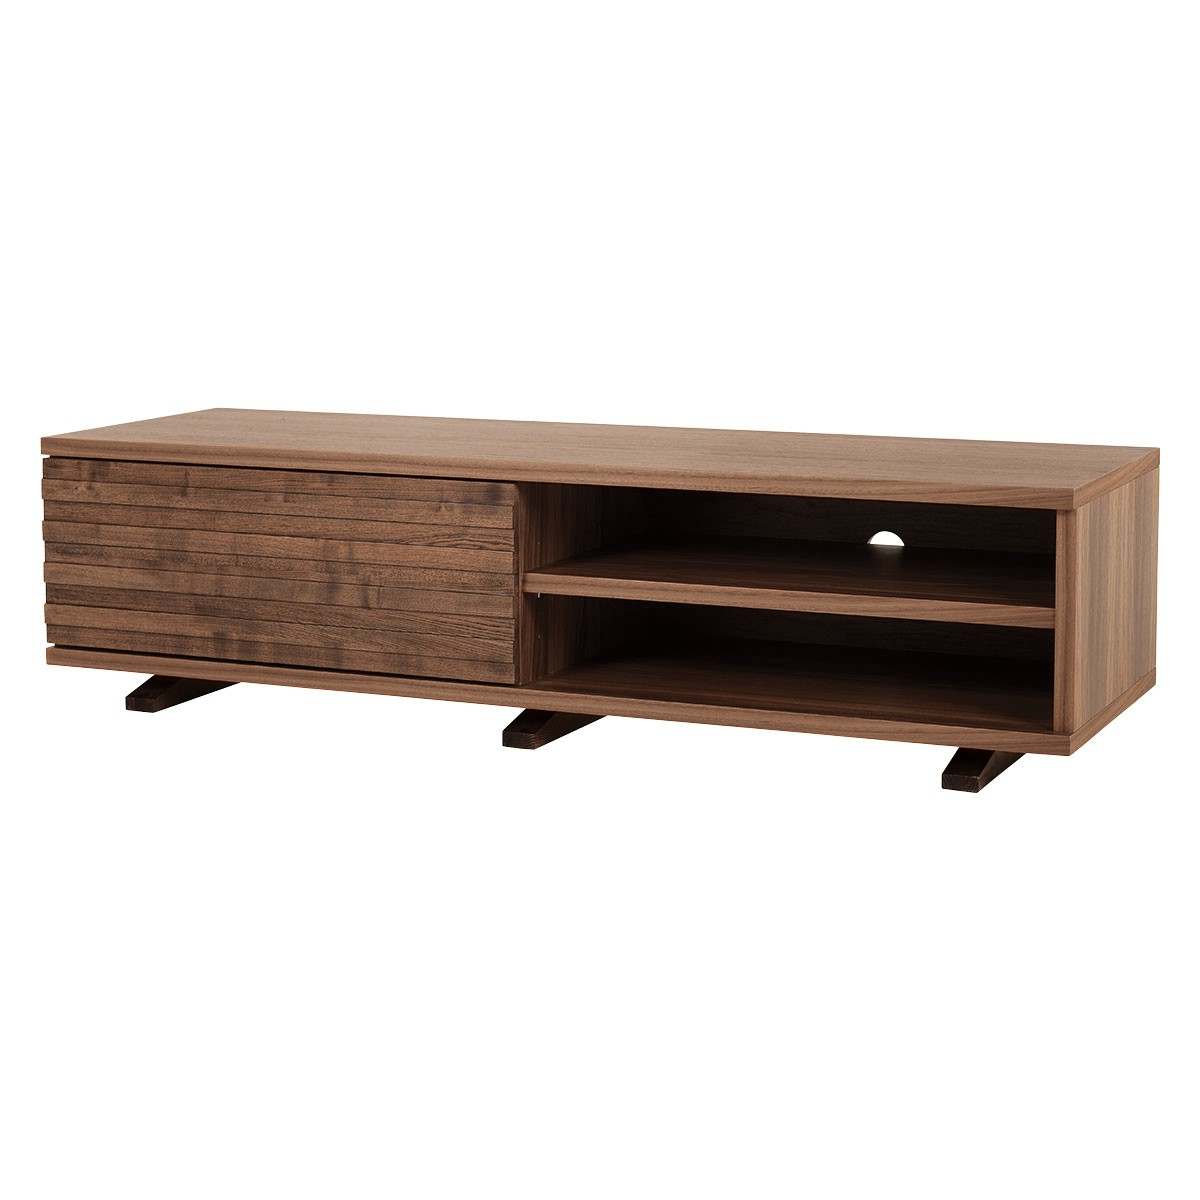 Well Liked Tv Stands & Units (View 20 of 20)